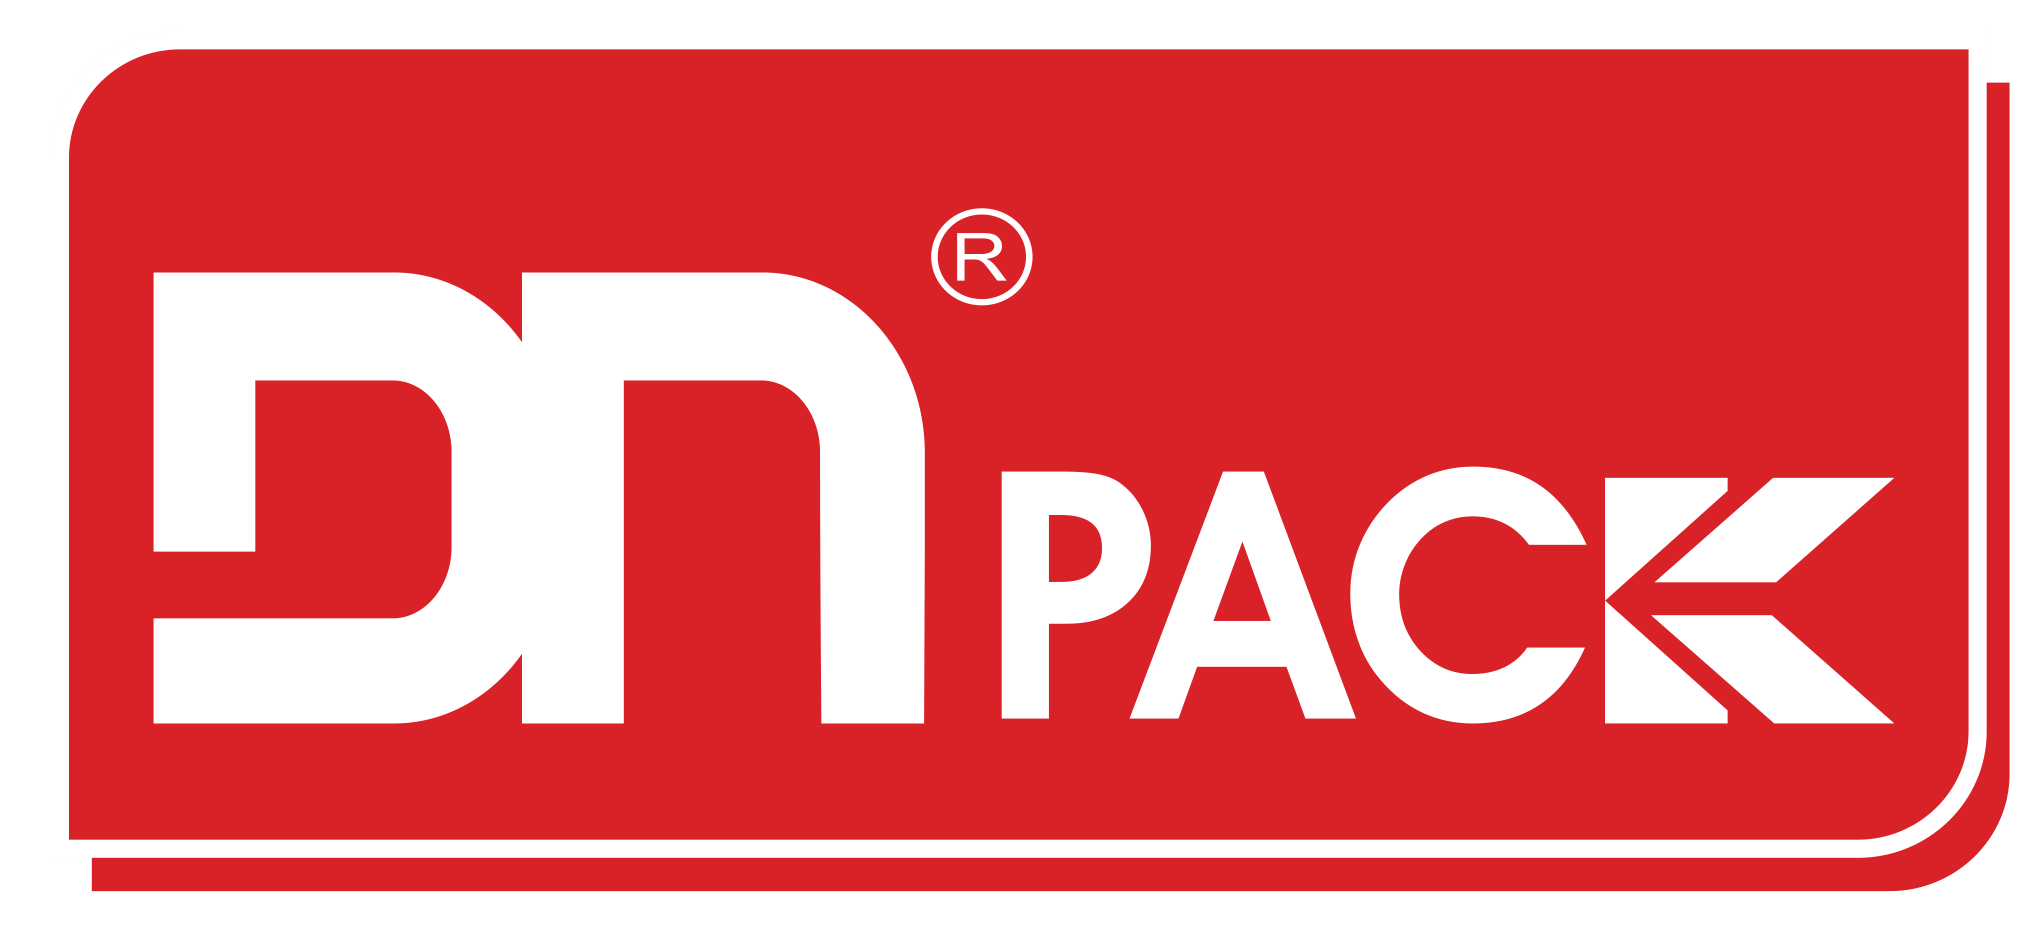 Duy Nhat Pack (DN Pack) Logo